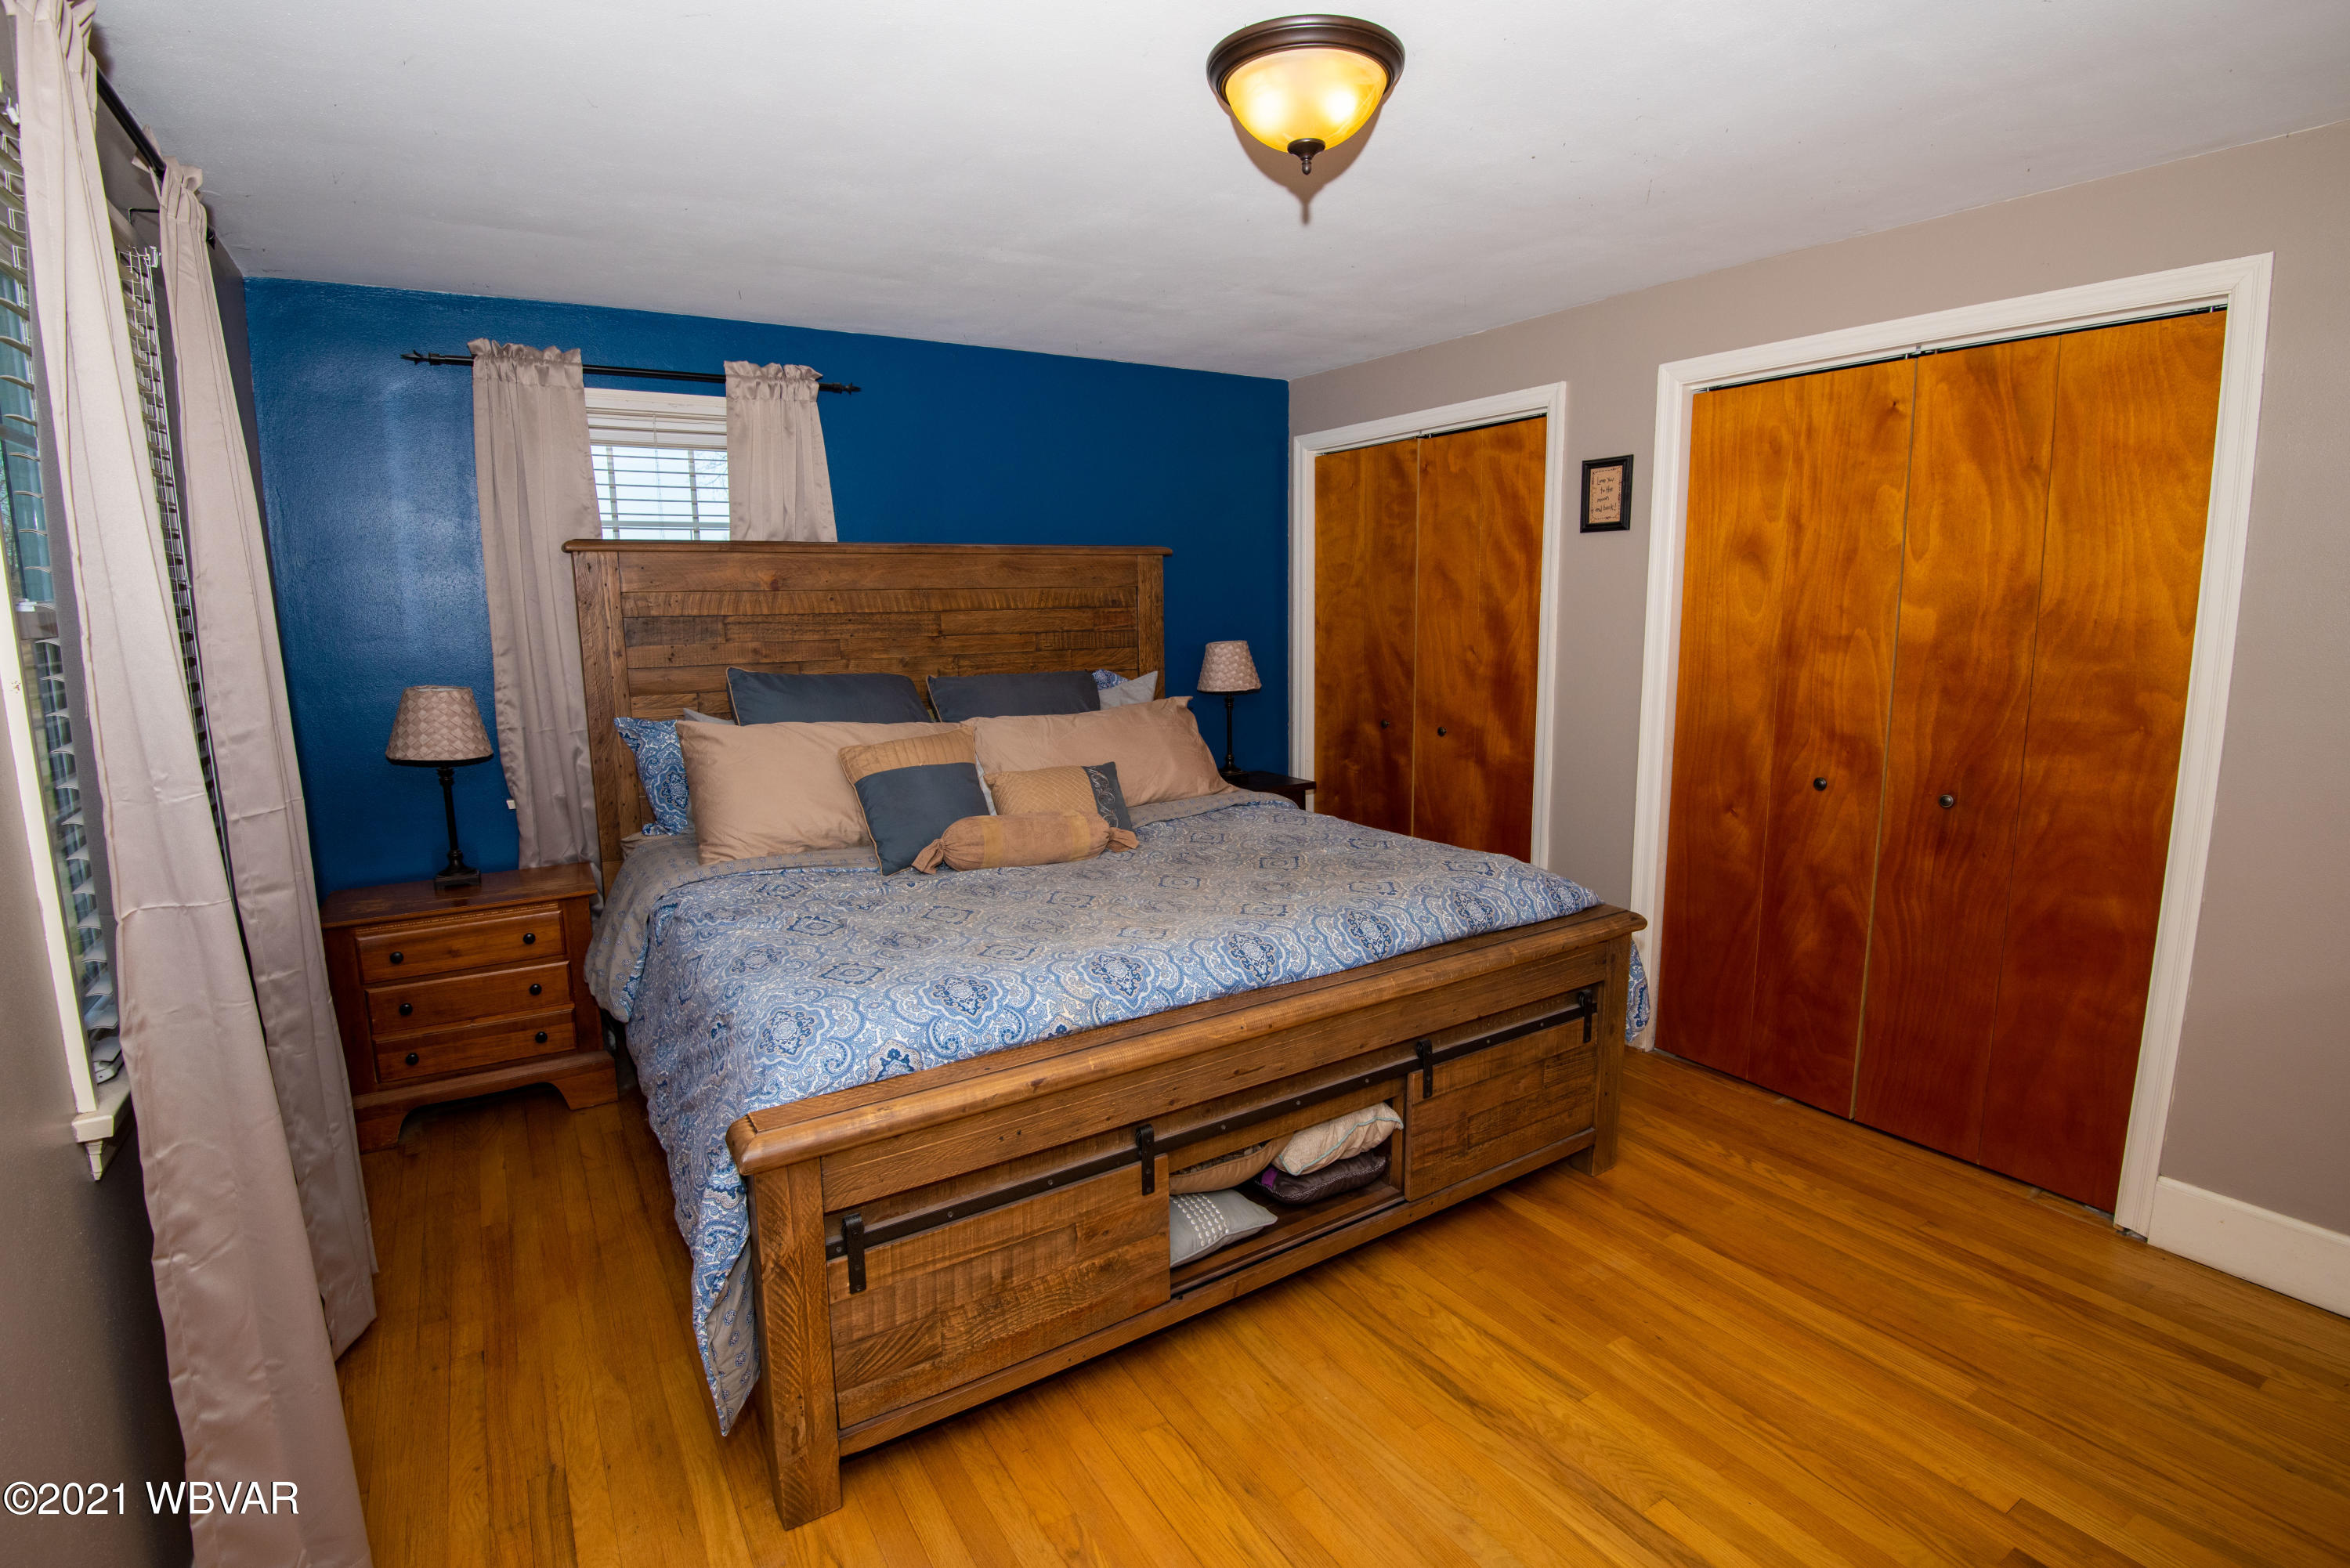 1420 RITCHEY STREET, Williamsport, PA 17701, 3 Bedrooms Bedrooms, ,2 BathroomsBathrooms,Residential,For sale,RITCHEY,WB-92259